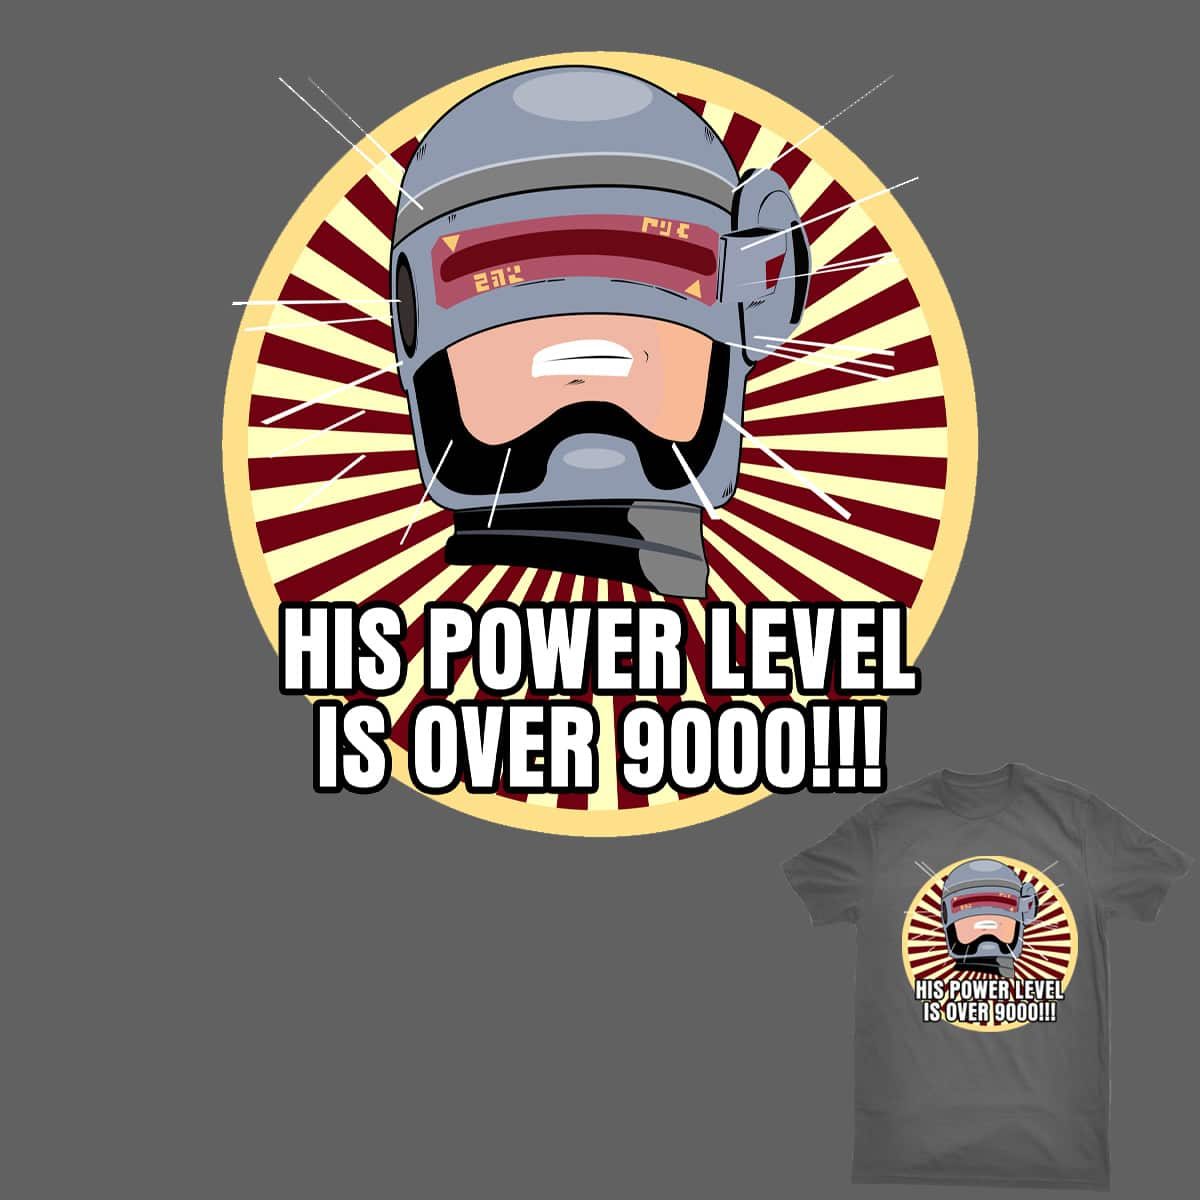 ROBOCOP OVER 9000 by tibz00098 on Threadless